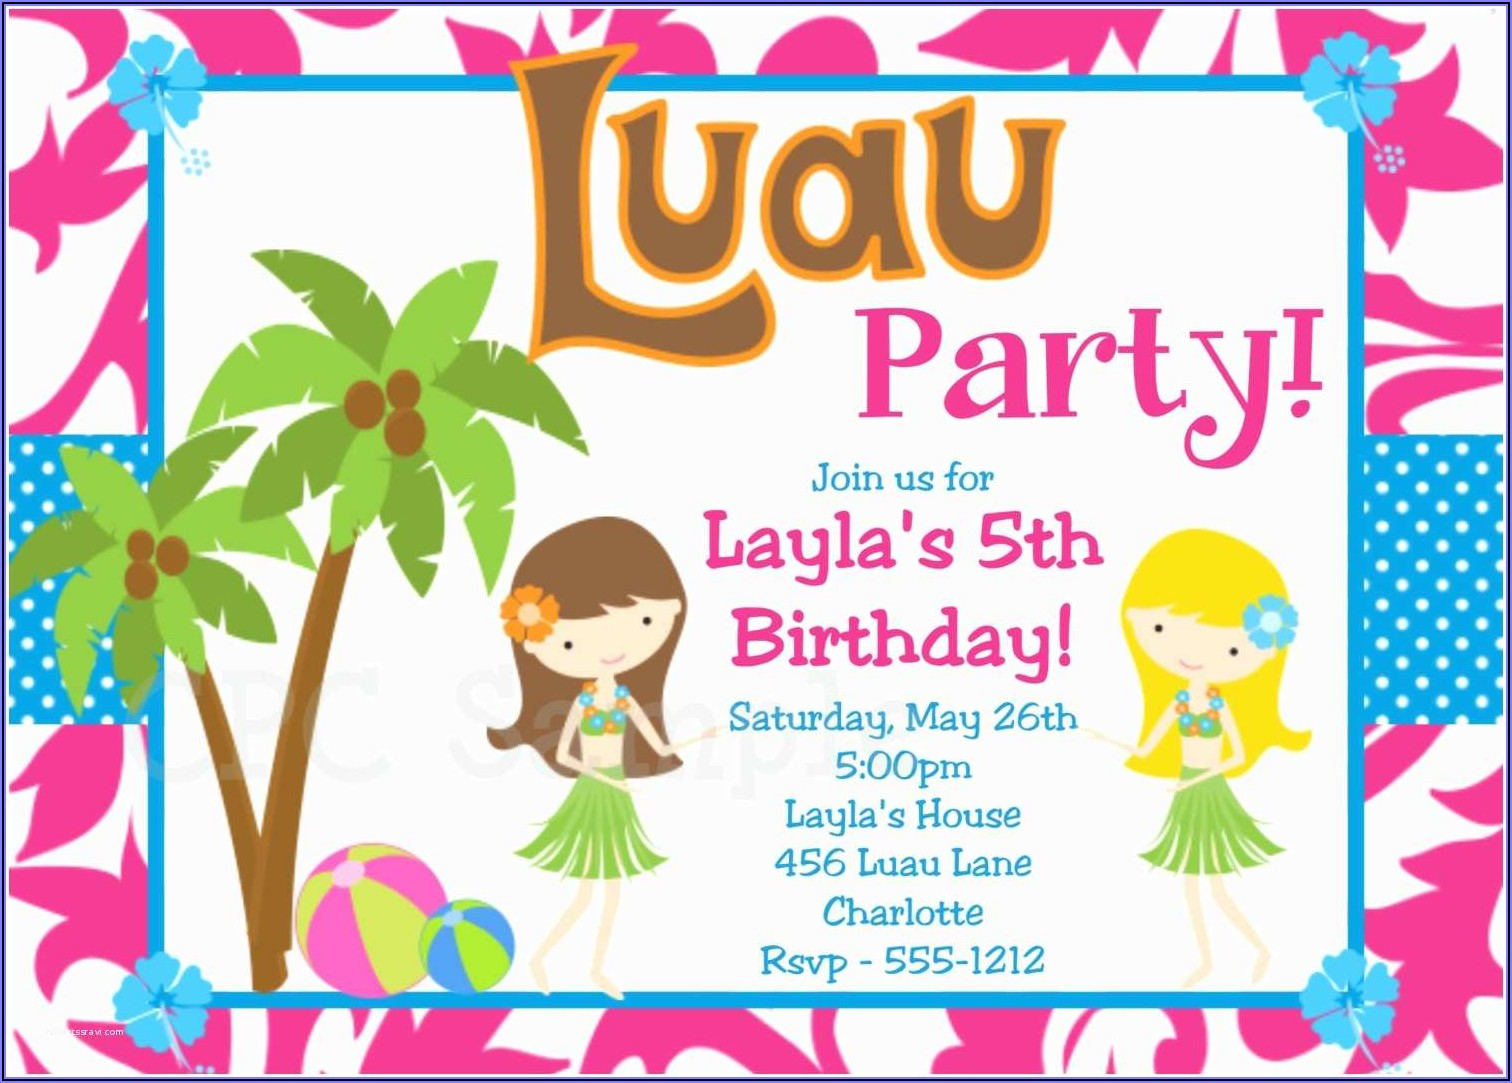 Luau Birthday Invitations Online